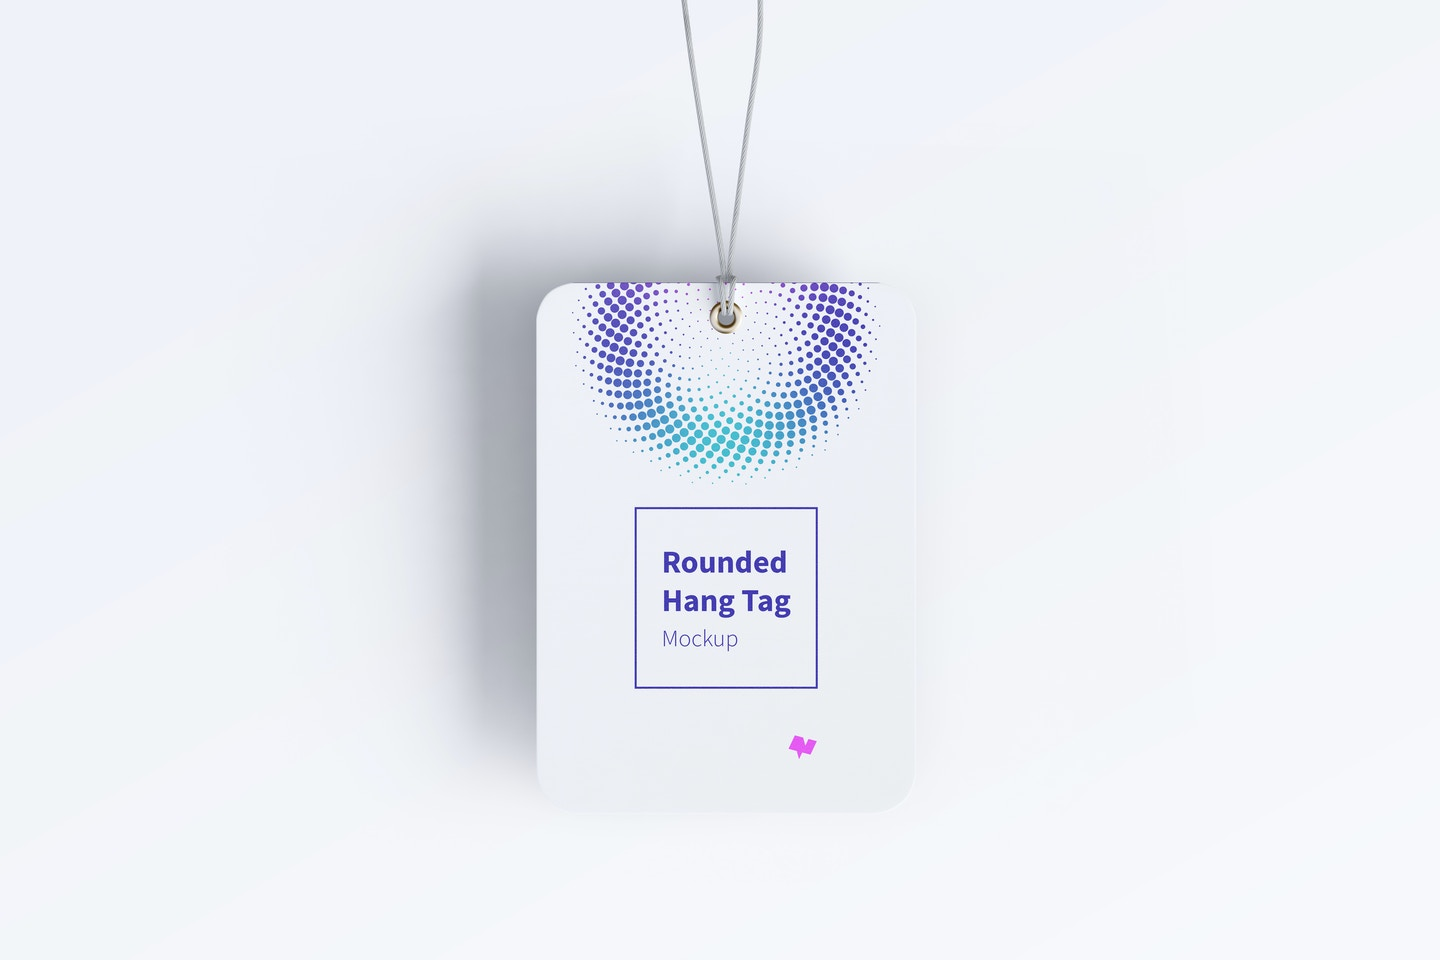 Rounded Hang Tag Mockup with String